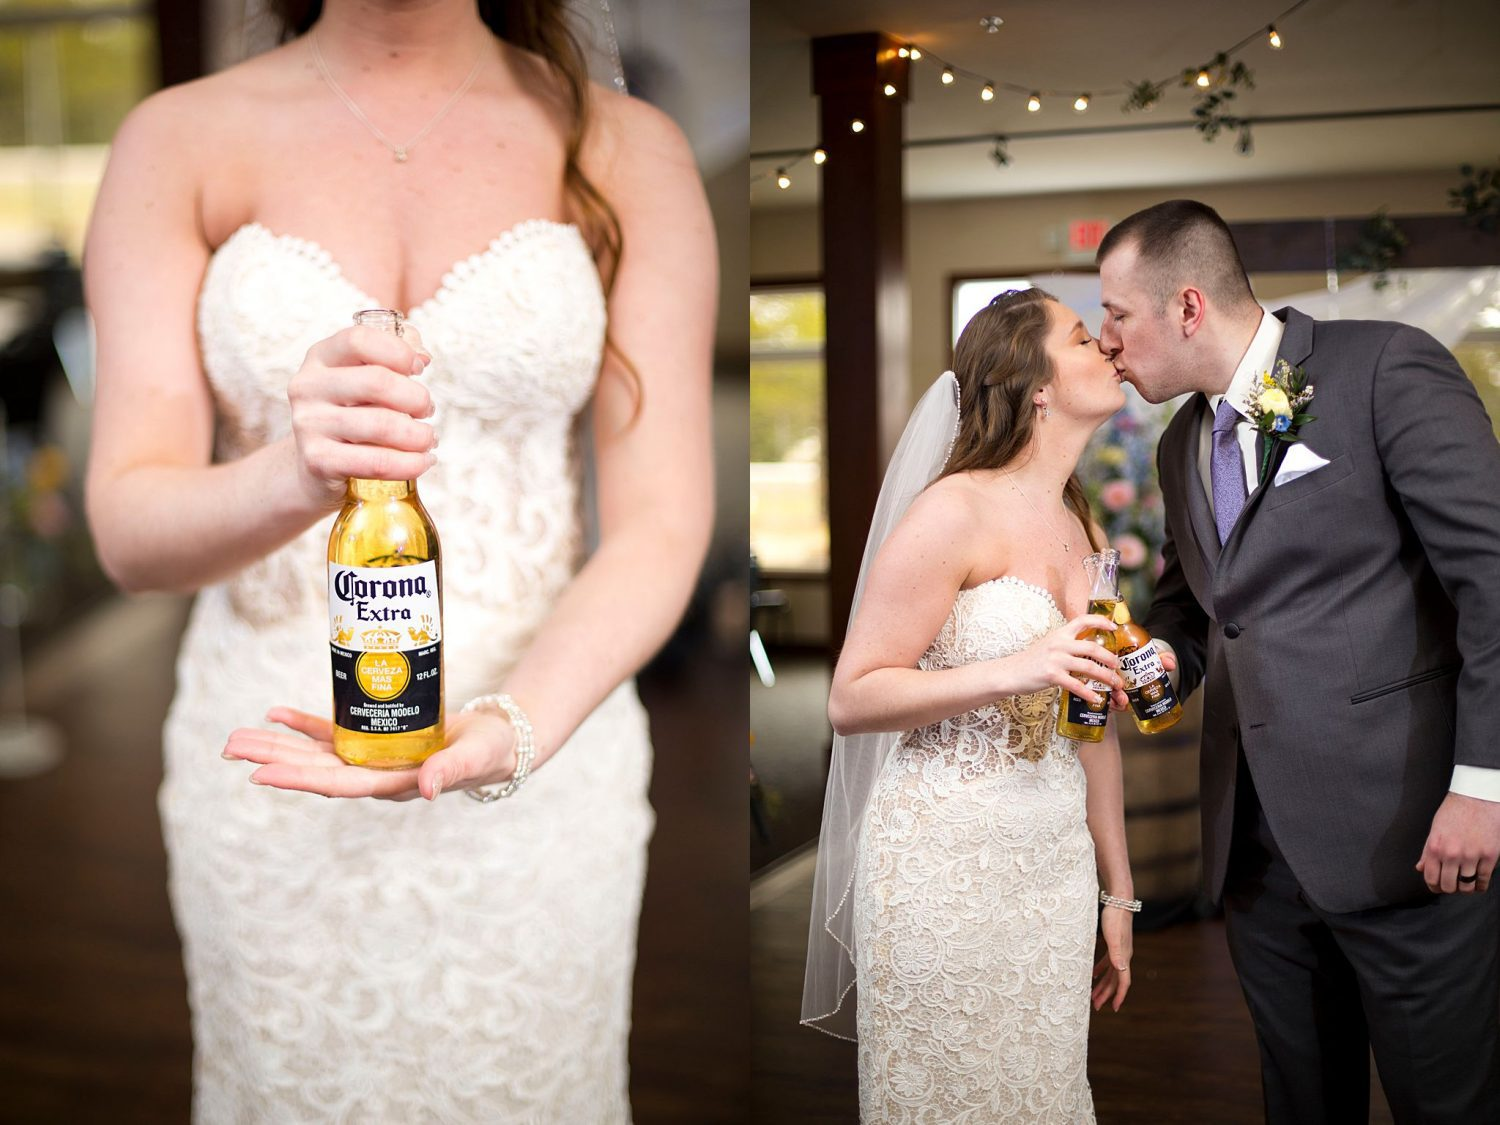 The bride holding a corona bottle, and the couple kissing as they cheers with Corona bottles.